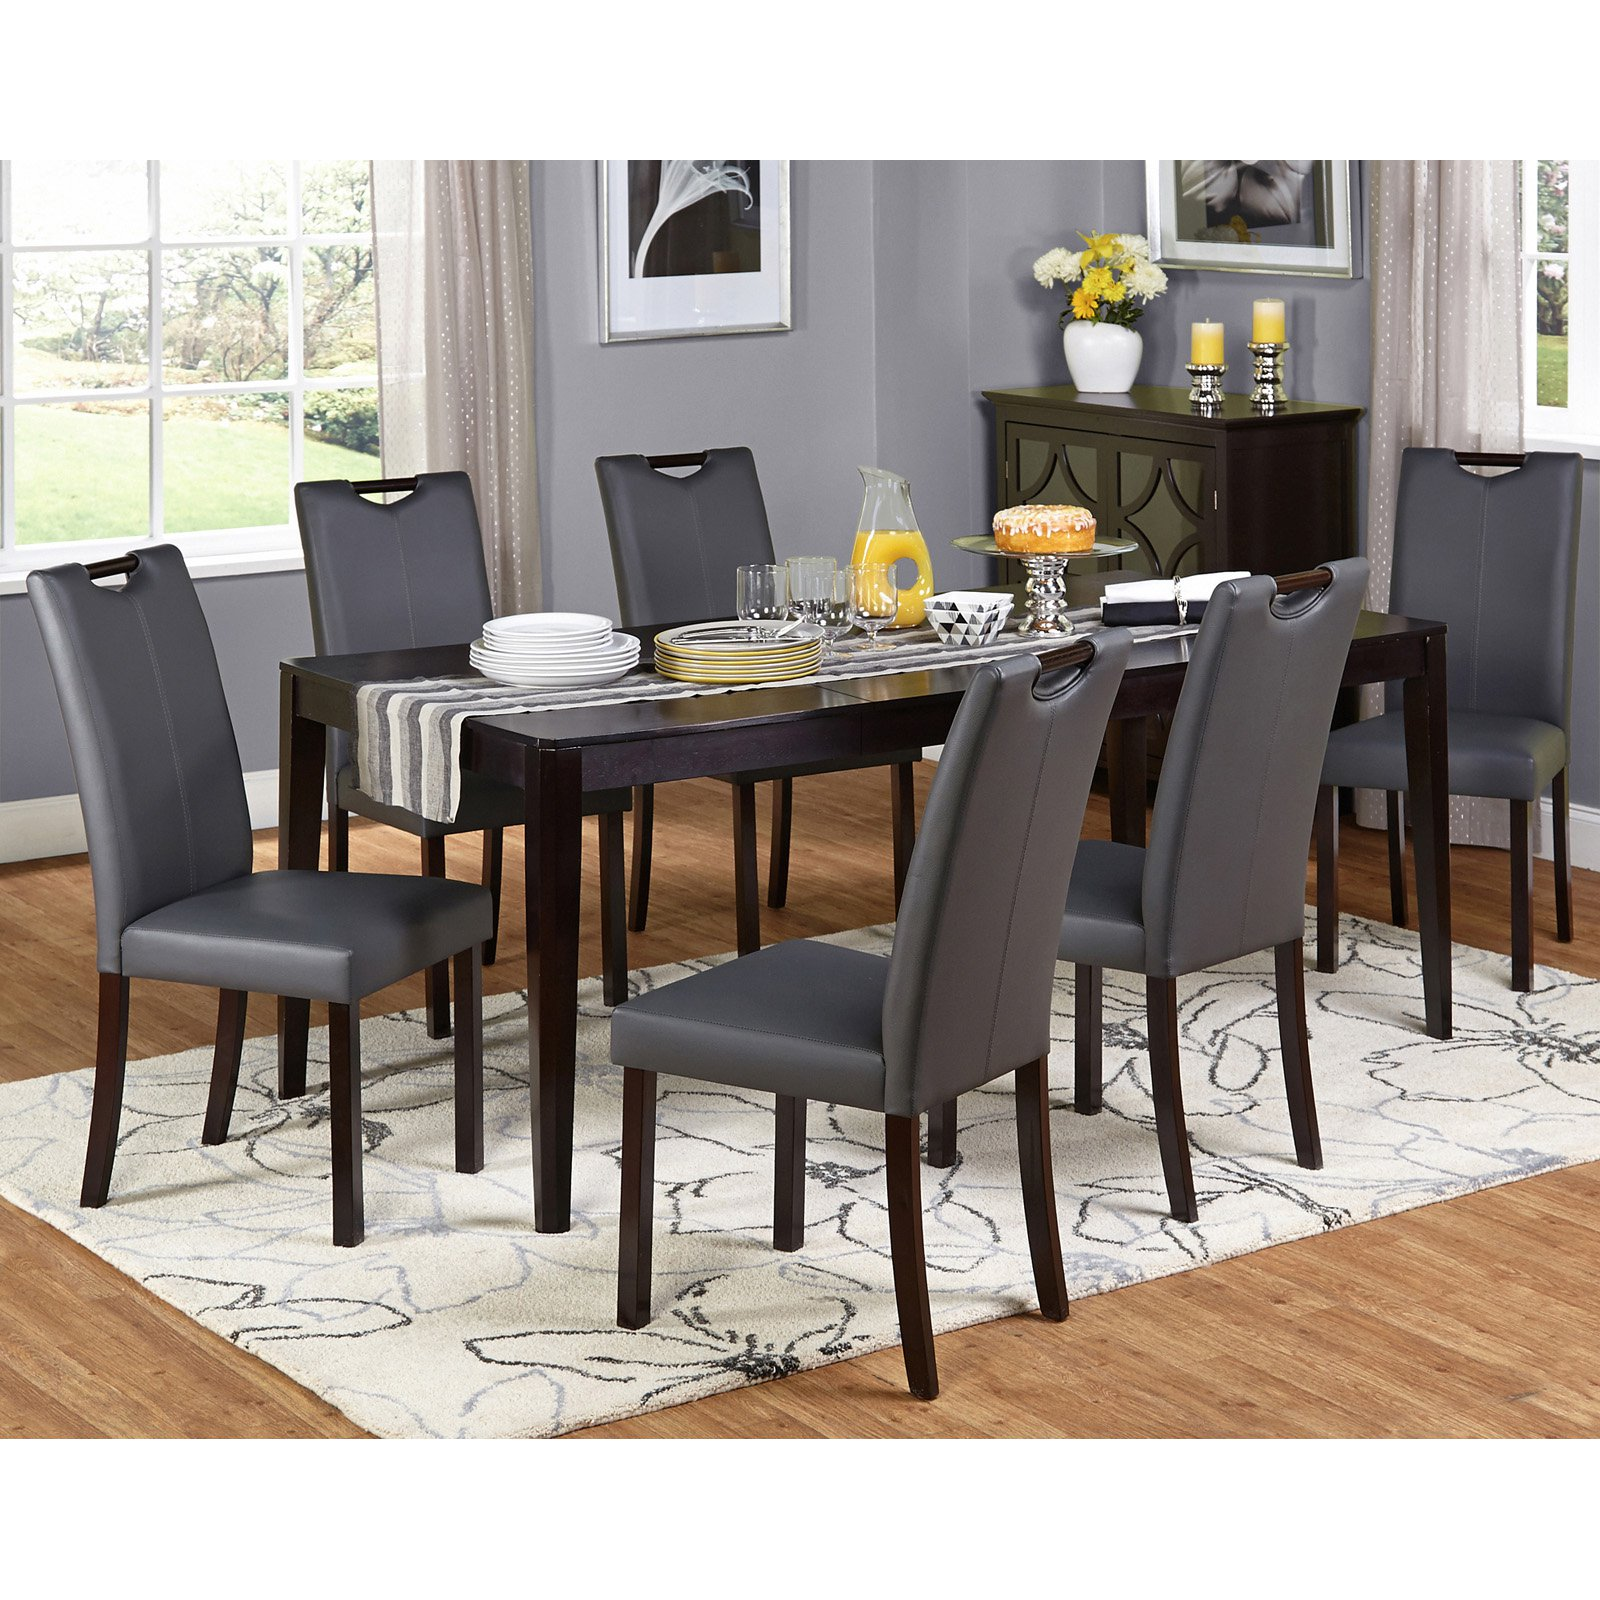 Target Marketing Systems Tilo 7 Piece Dining Table Set